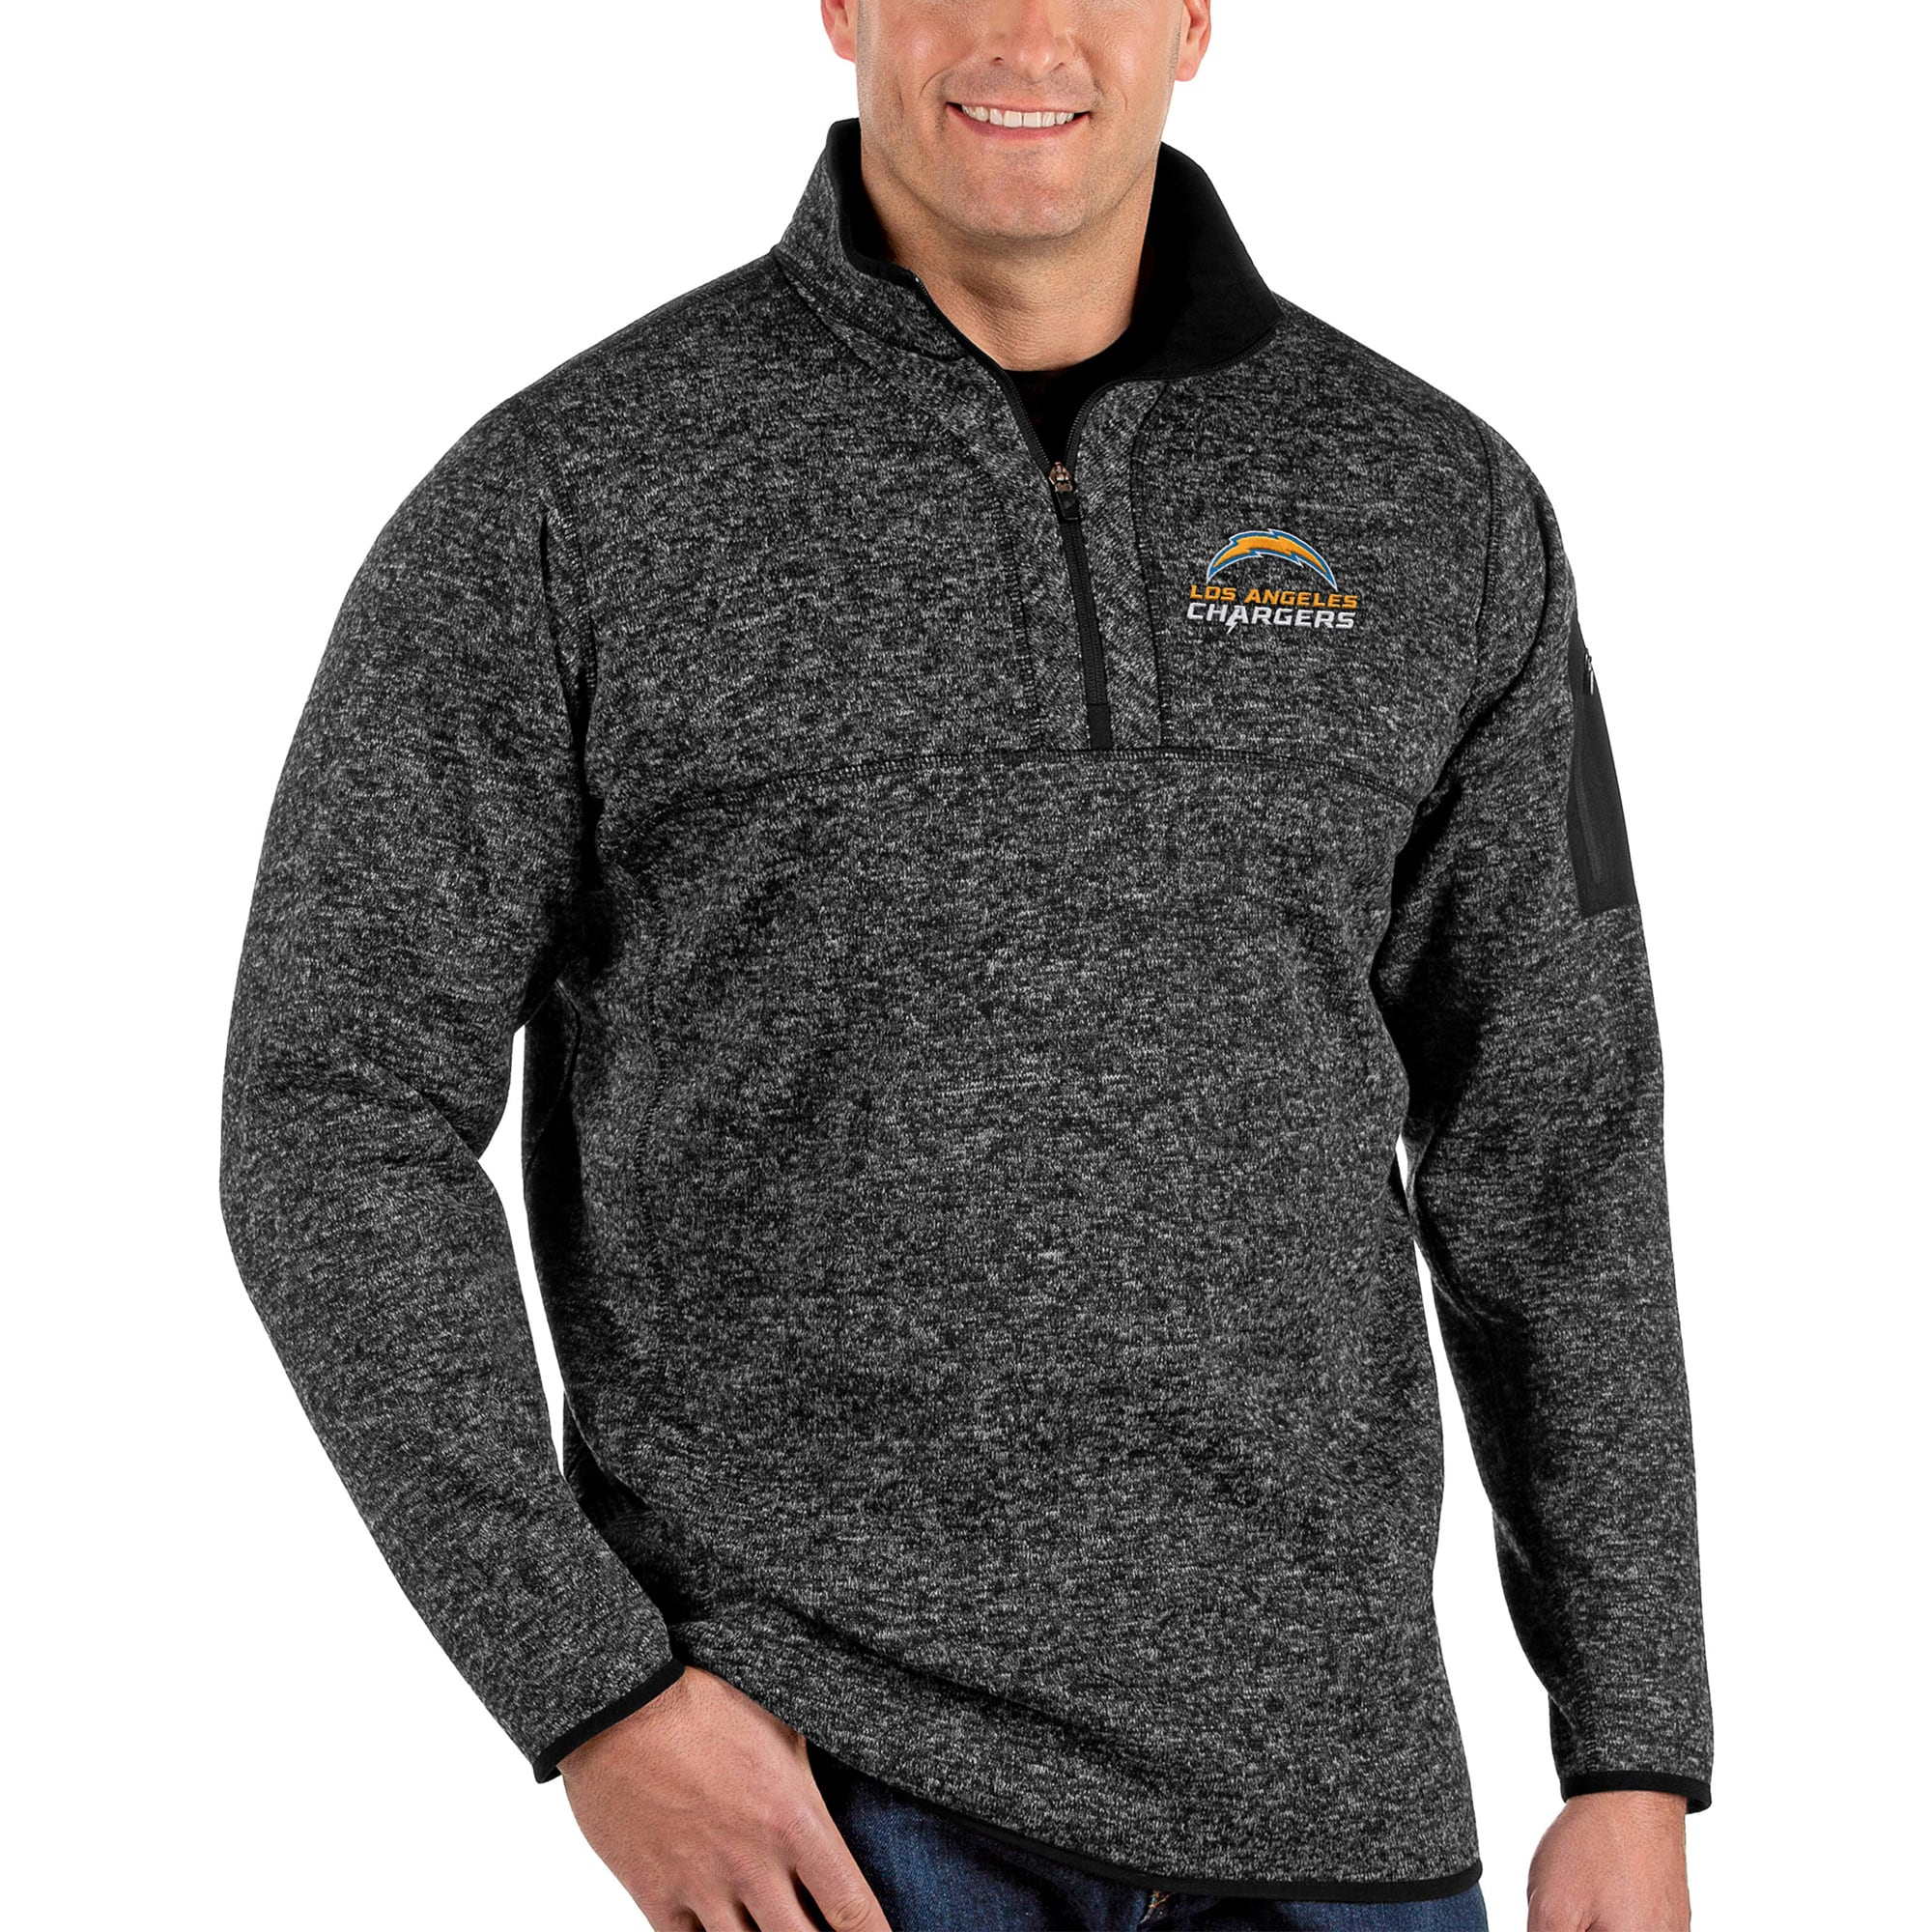 Los Angeles Chargers Antigua Big & Tall Fortune Quarter-Zip Pullover Jacket - Heather Black